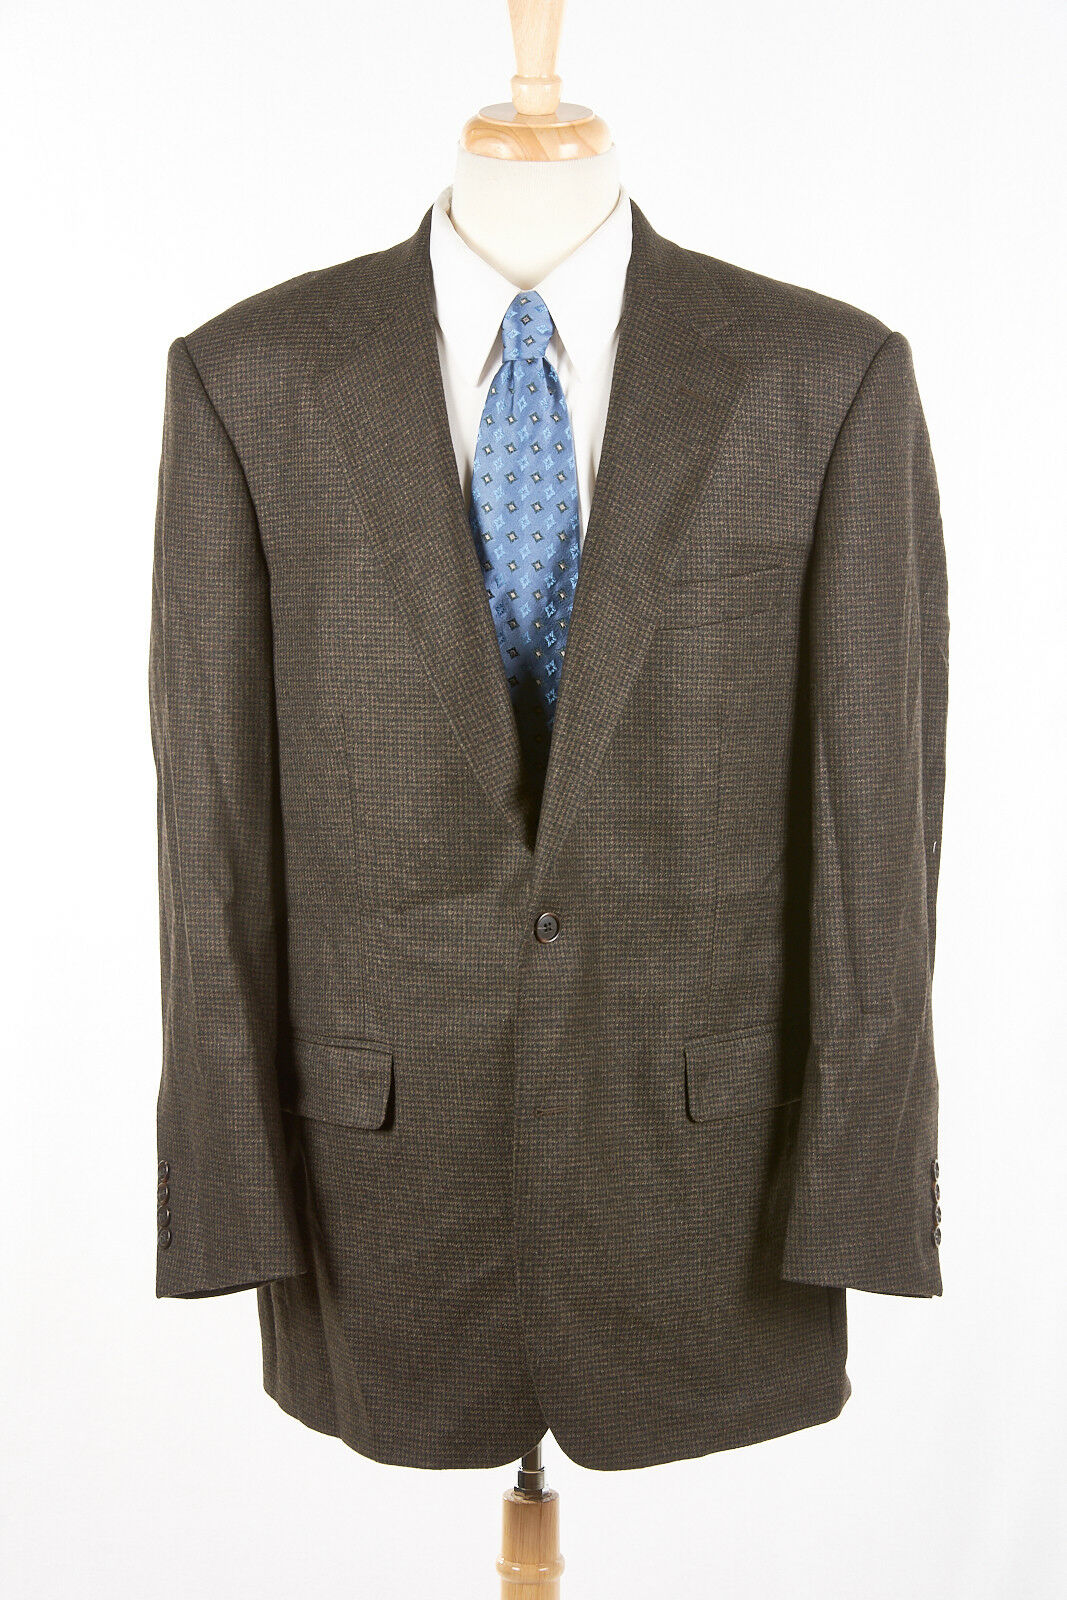 BROOKS BredHERS Sport Coat 44 L Madison in Mossy Brown Houndstooth SAXXON Wool